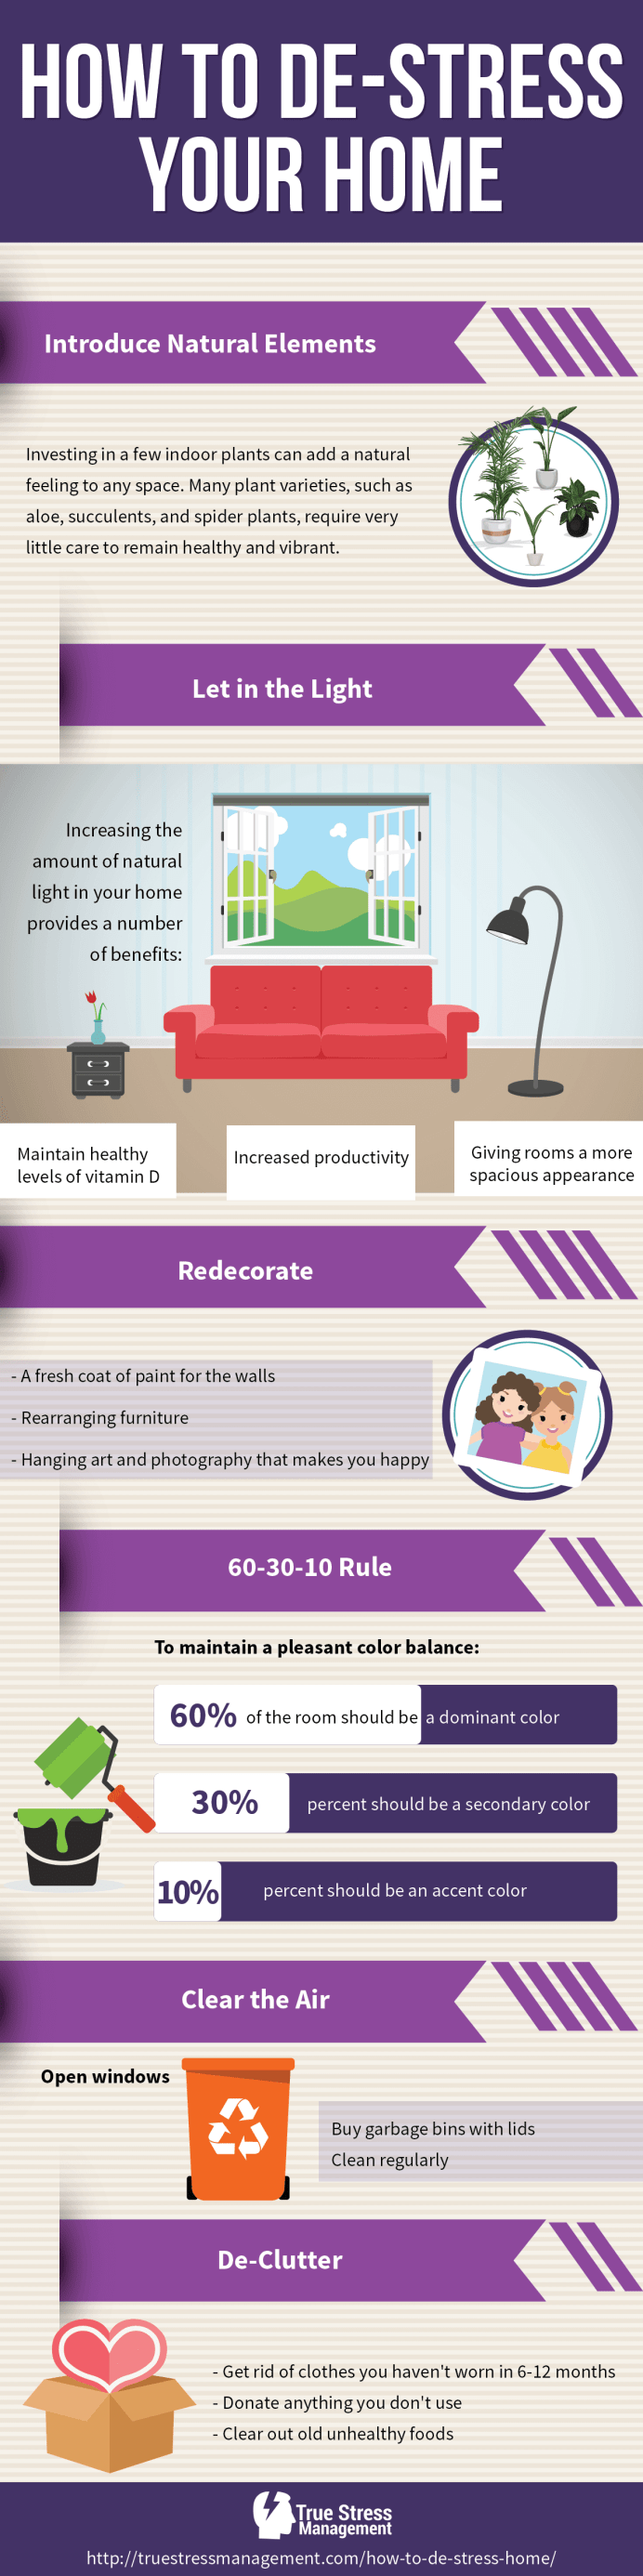 how to de-stress your home infographic